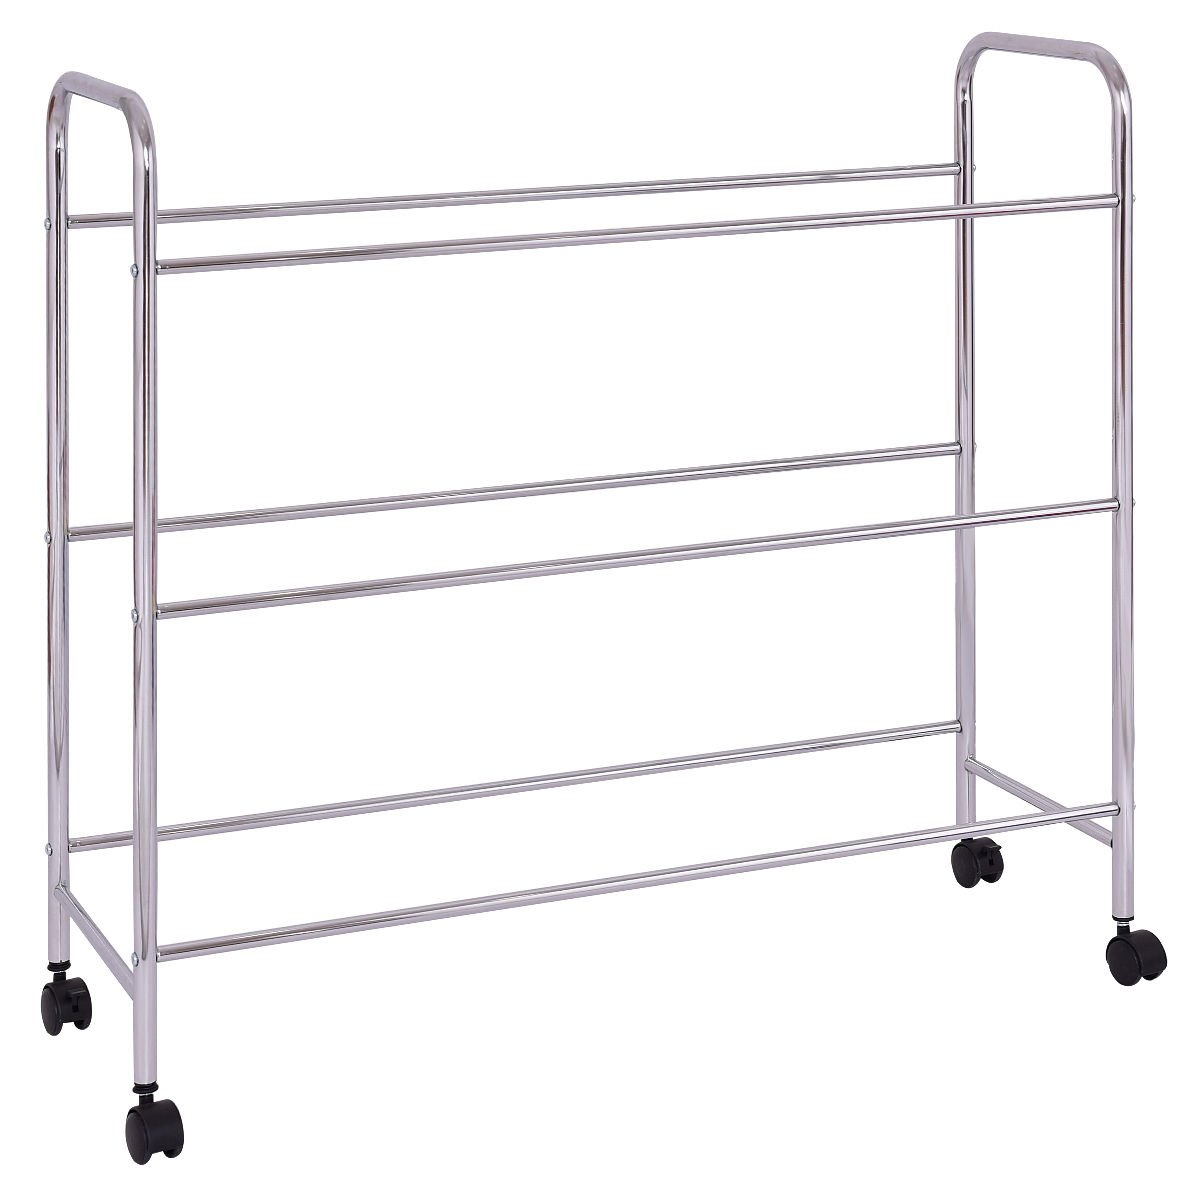 KCHEX>Toy Bin Cart Rack Organizer Kids Childrens Storage Box Playroom Bedroom Shelf>This is Our 9 Plastic Drawer Rolling cart, which is of and Brand New. Thanks to its Colorful Plastic by KCHEX (Image #6)